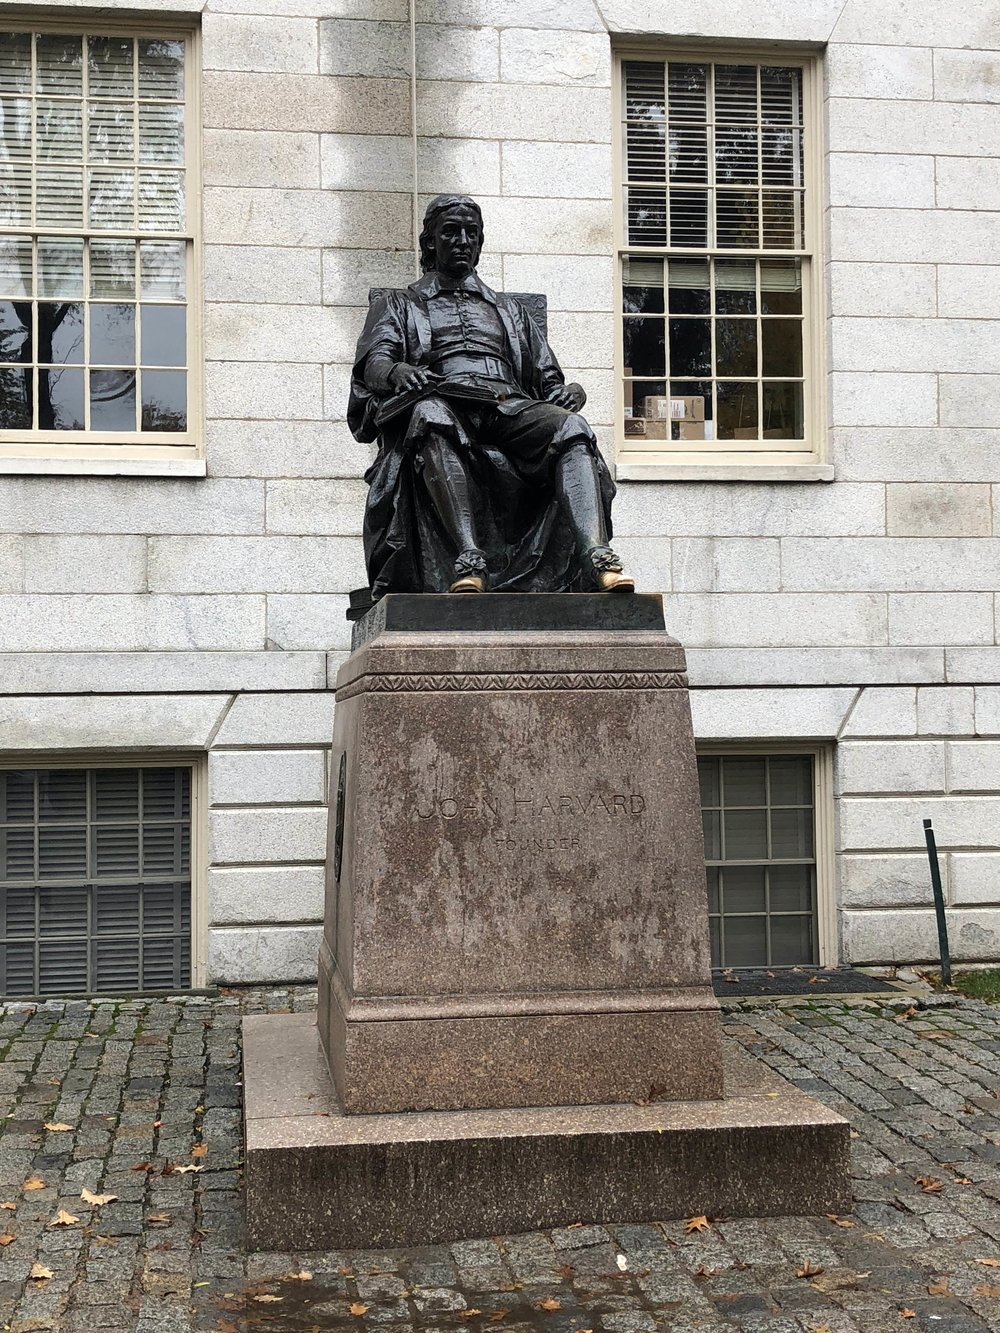 John Harvard. Apparently it's good luck to rub his toes.